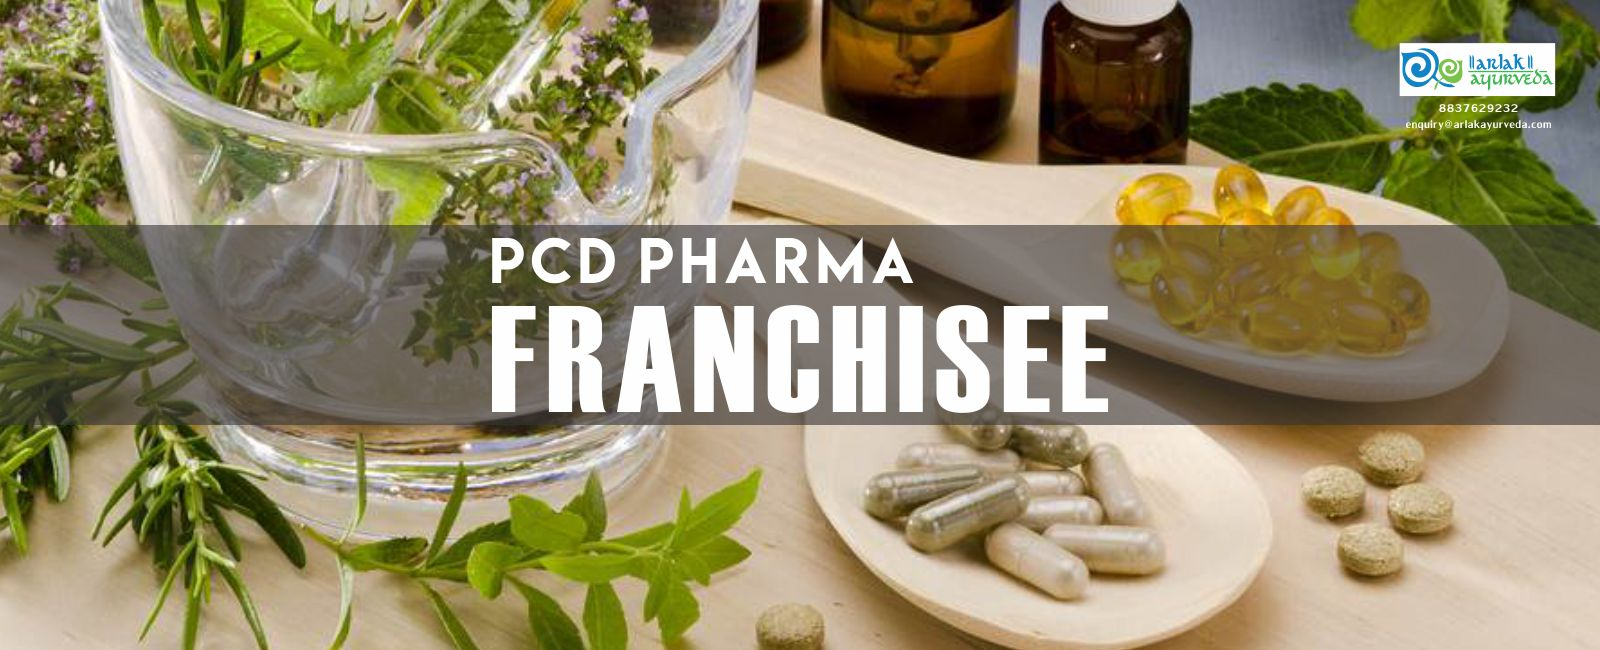 Pharmabizconnect turns a new page in the pharma sector with opportunities for establishing business